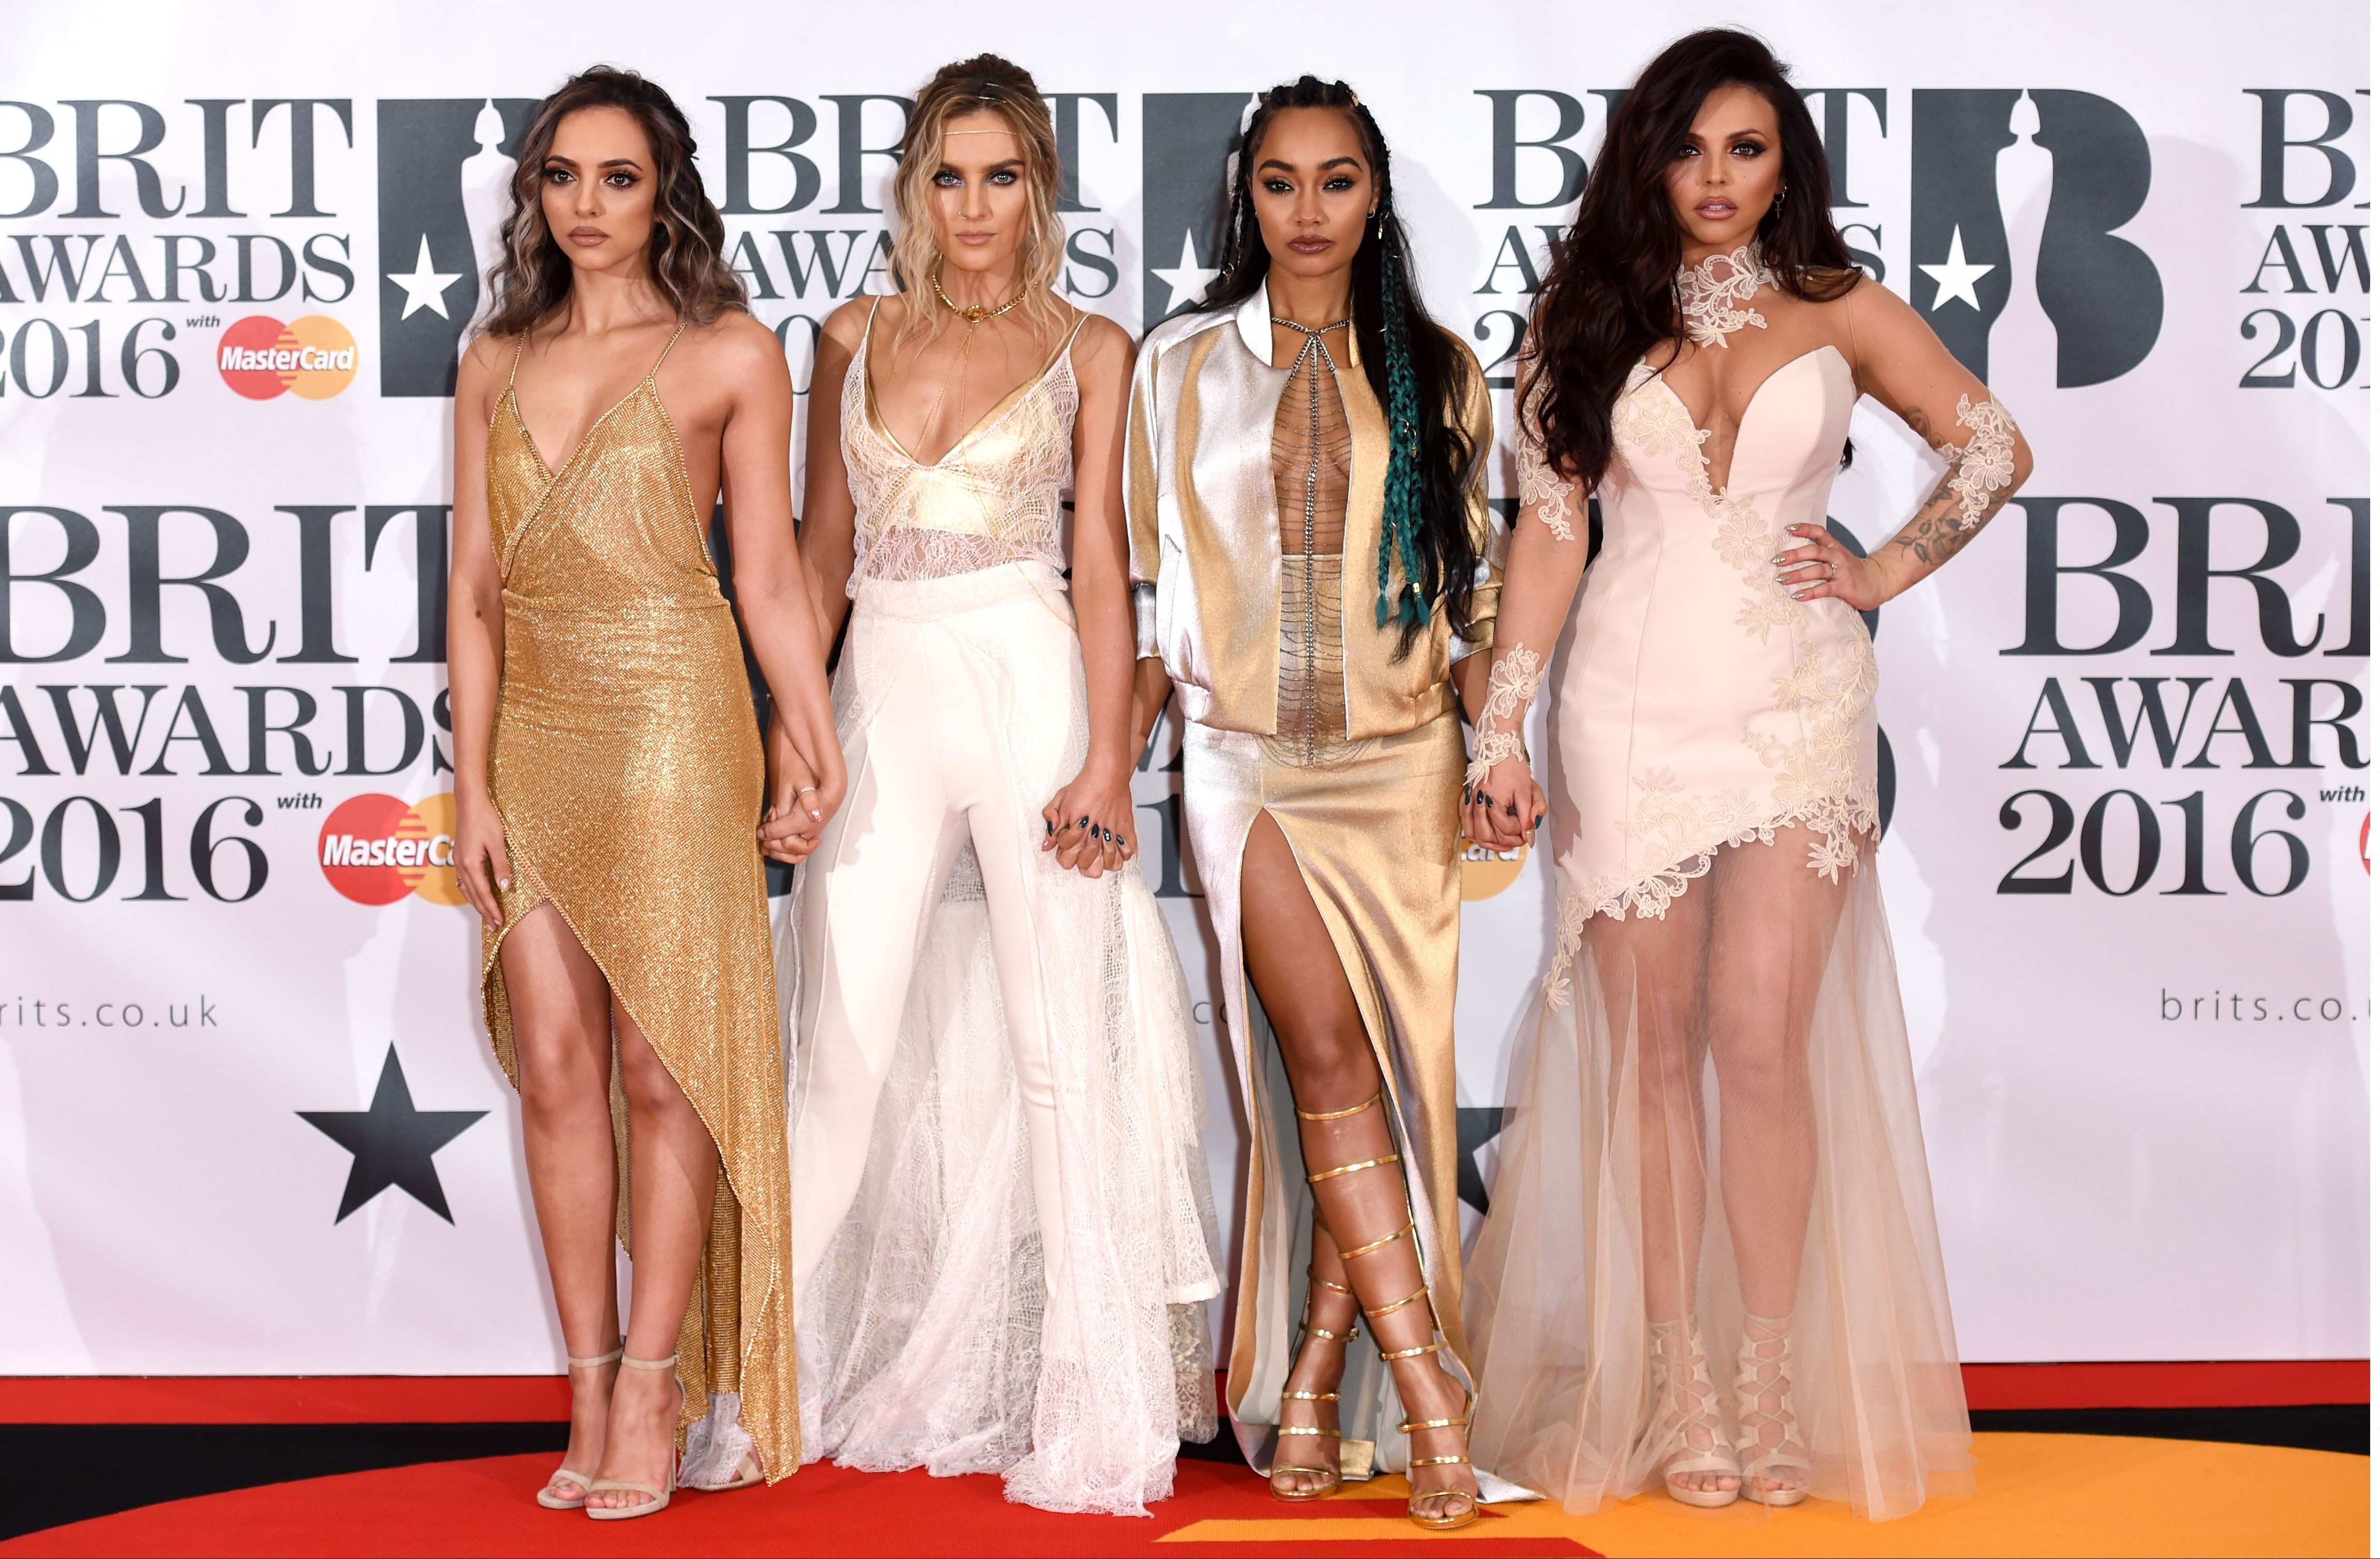 Mandatory Credit: Photo by David Fisher/REX/Shutterstock (5593462cn) Little Mix The Brit Awards, Arrivals, O2 Arena, London, Britain - 24 Feb 2016